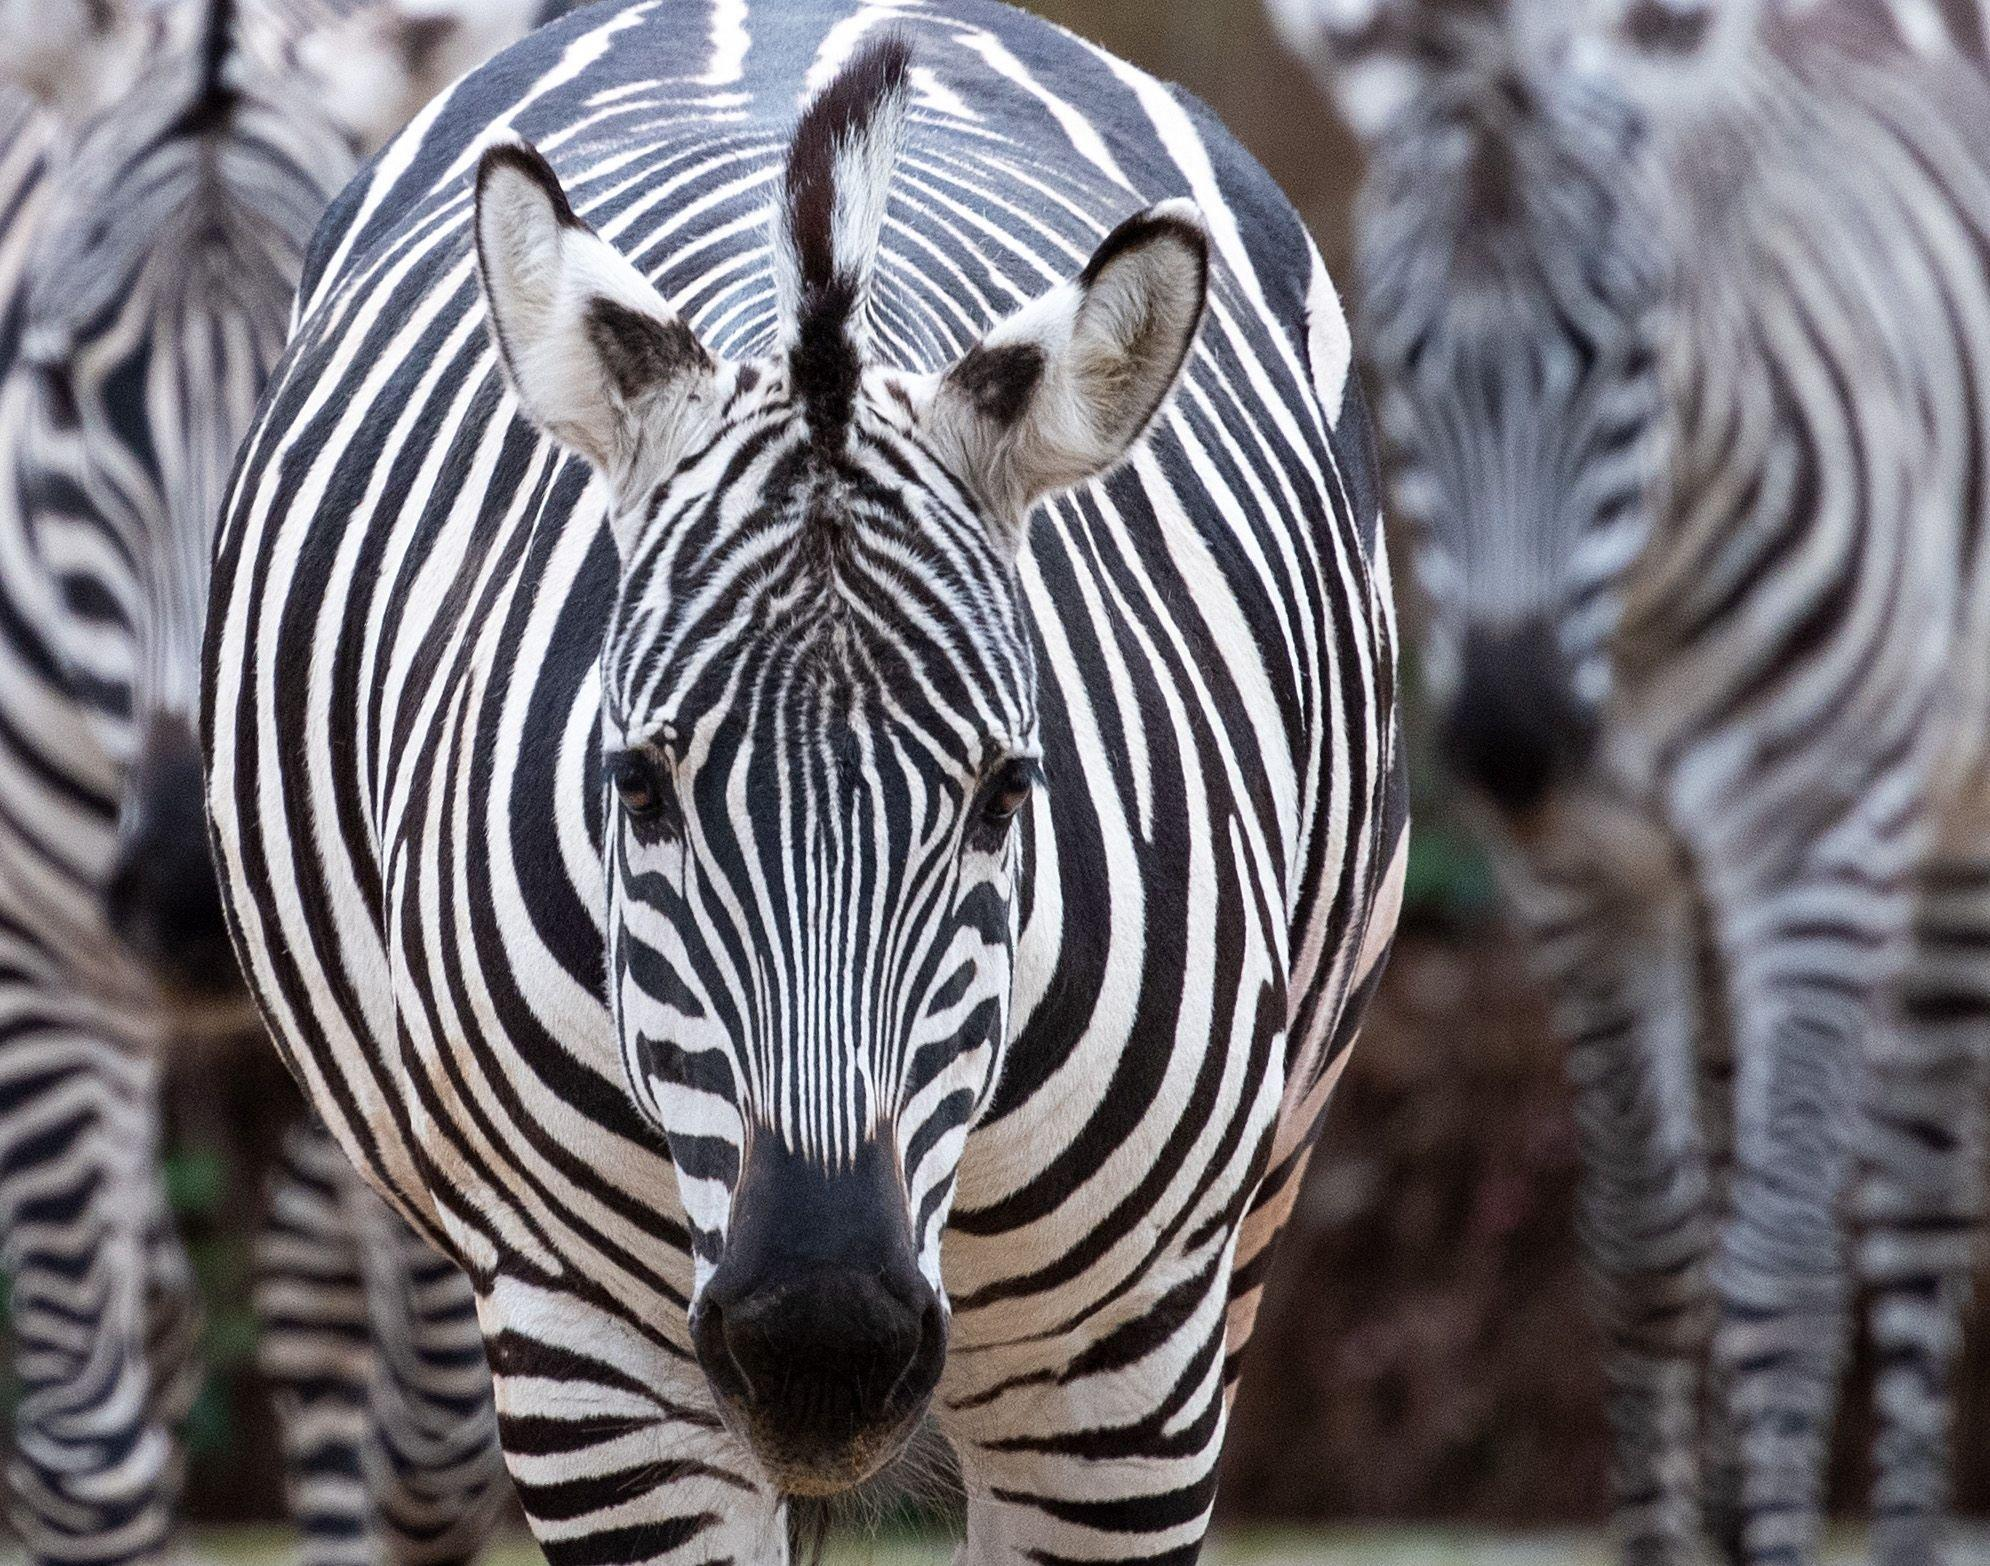 "A man has shot and killed his pet zebra after it escaped from his ranch in Callahan, a town in Florida.The animal, reportedly named Shadow, broke free from Cottonwood Ranch and ran down a main road, chased by several vehicles.Witnesses said the zebra was eventually cornered in a cul-de-sac around two miles from the ranch, where the owner shot and killed it.Bill Leeper, the local sheriff, said he understood that Shadow was injured during the escape and that the owner chose to euthanise the zebra while police officers were at the scene.Witnesses told WJXT-TV that the animal did not appear injured but the decision was made to kill it so that it could not hurt anyone.""I had to stop and think a minute,"" Jenee Watkins told the news outlet.""It's not every day you see a zebra trotting through your neighbourhood.""Officials have confirmed that the owner did not have a valid license to keep a zebra on his ranch.A state permit is required to own and keep a zebra in Florida.It is unclear whether he will face charges over the lack of permit.Officials said the investigation into the animal's escape and death was ongoing."